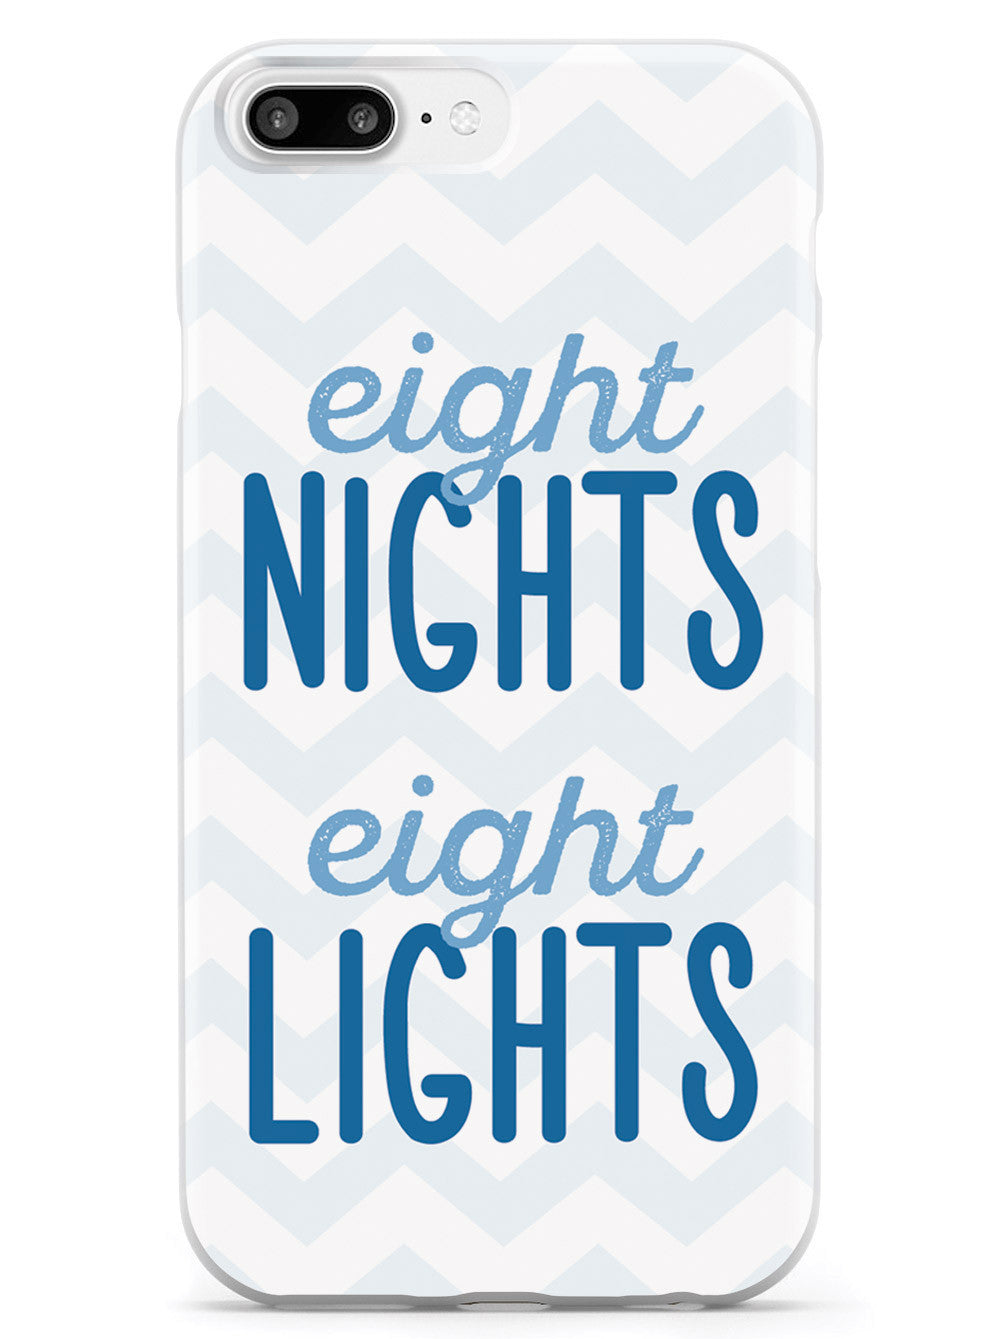 Eight Nights, Eight Lights - Hanukkah Case